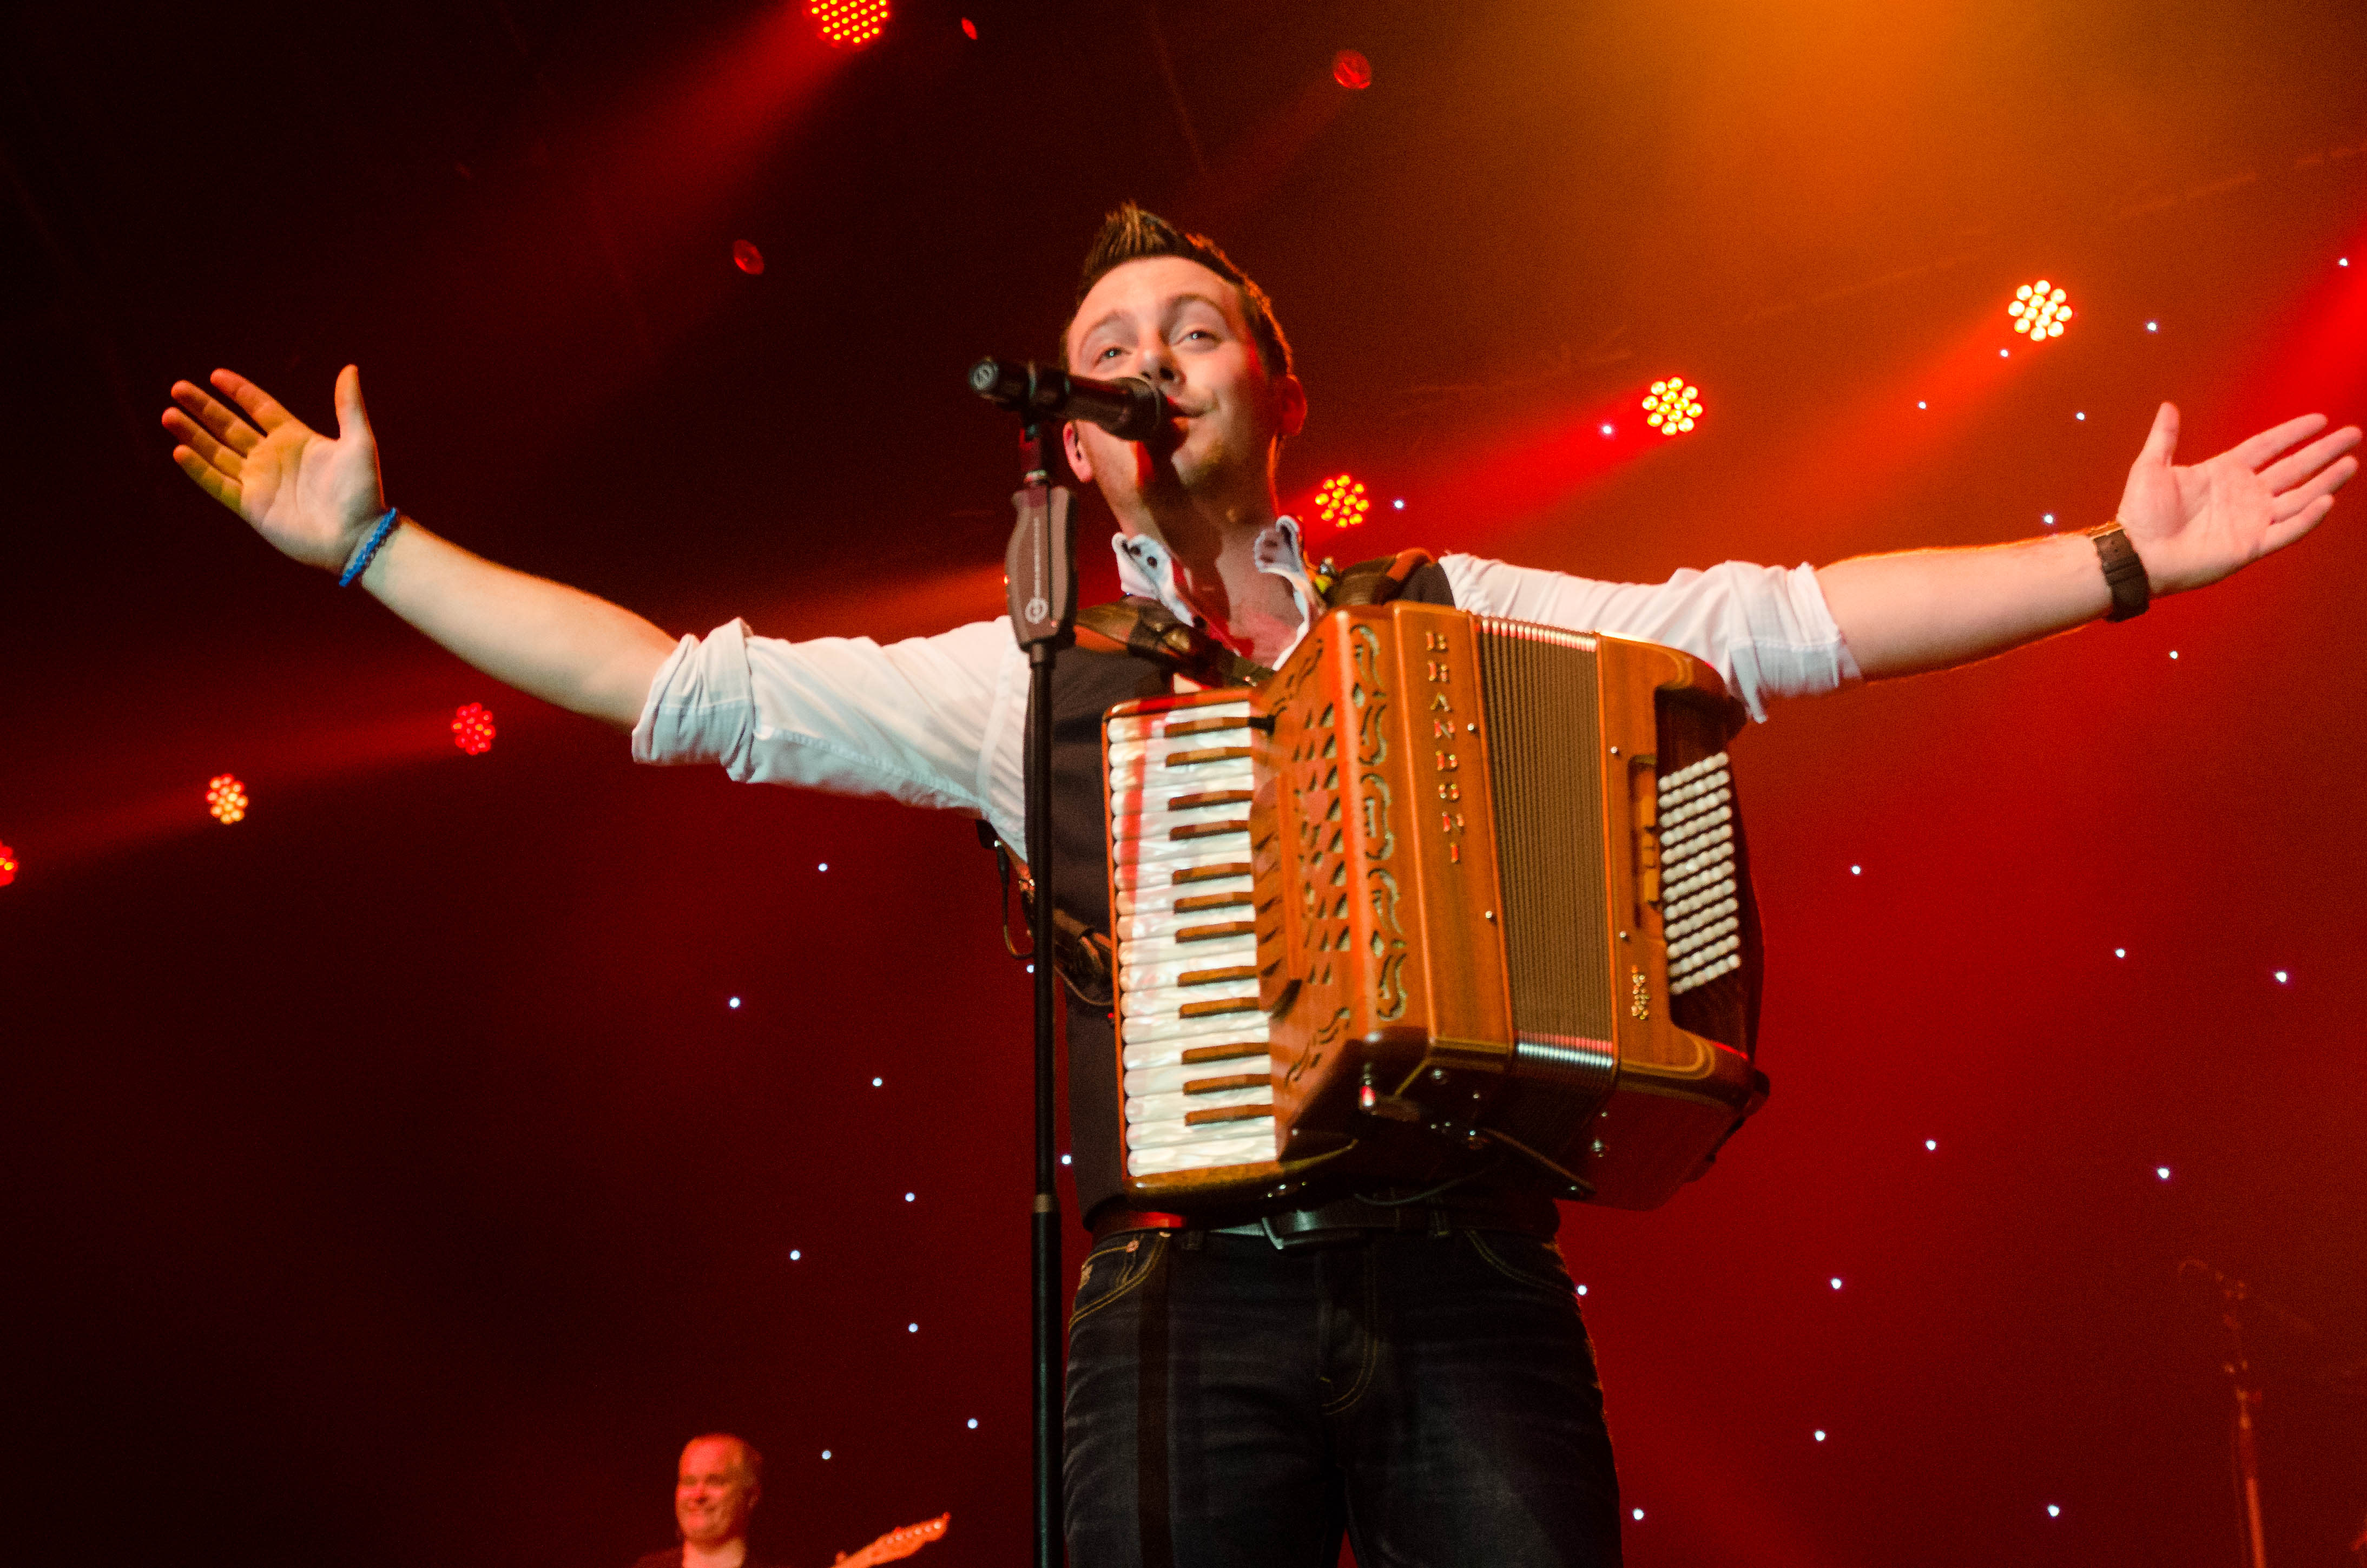 nathan-carter-at-the-marquee-cork-by-sean-smyth-15-6-14-19-of-55